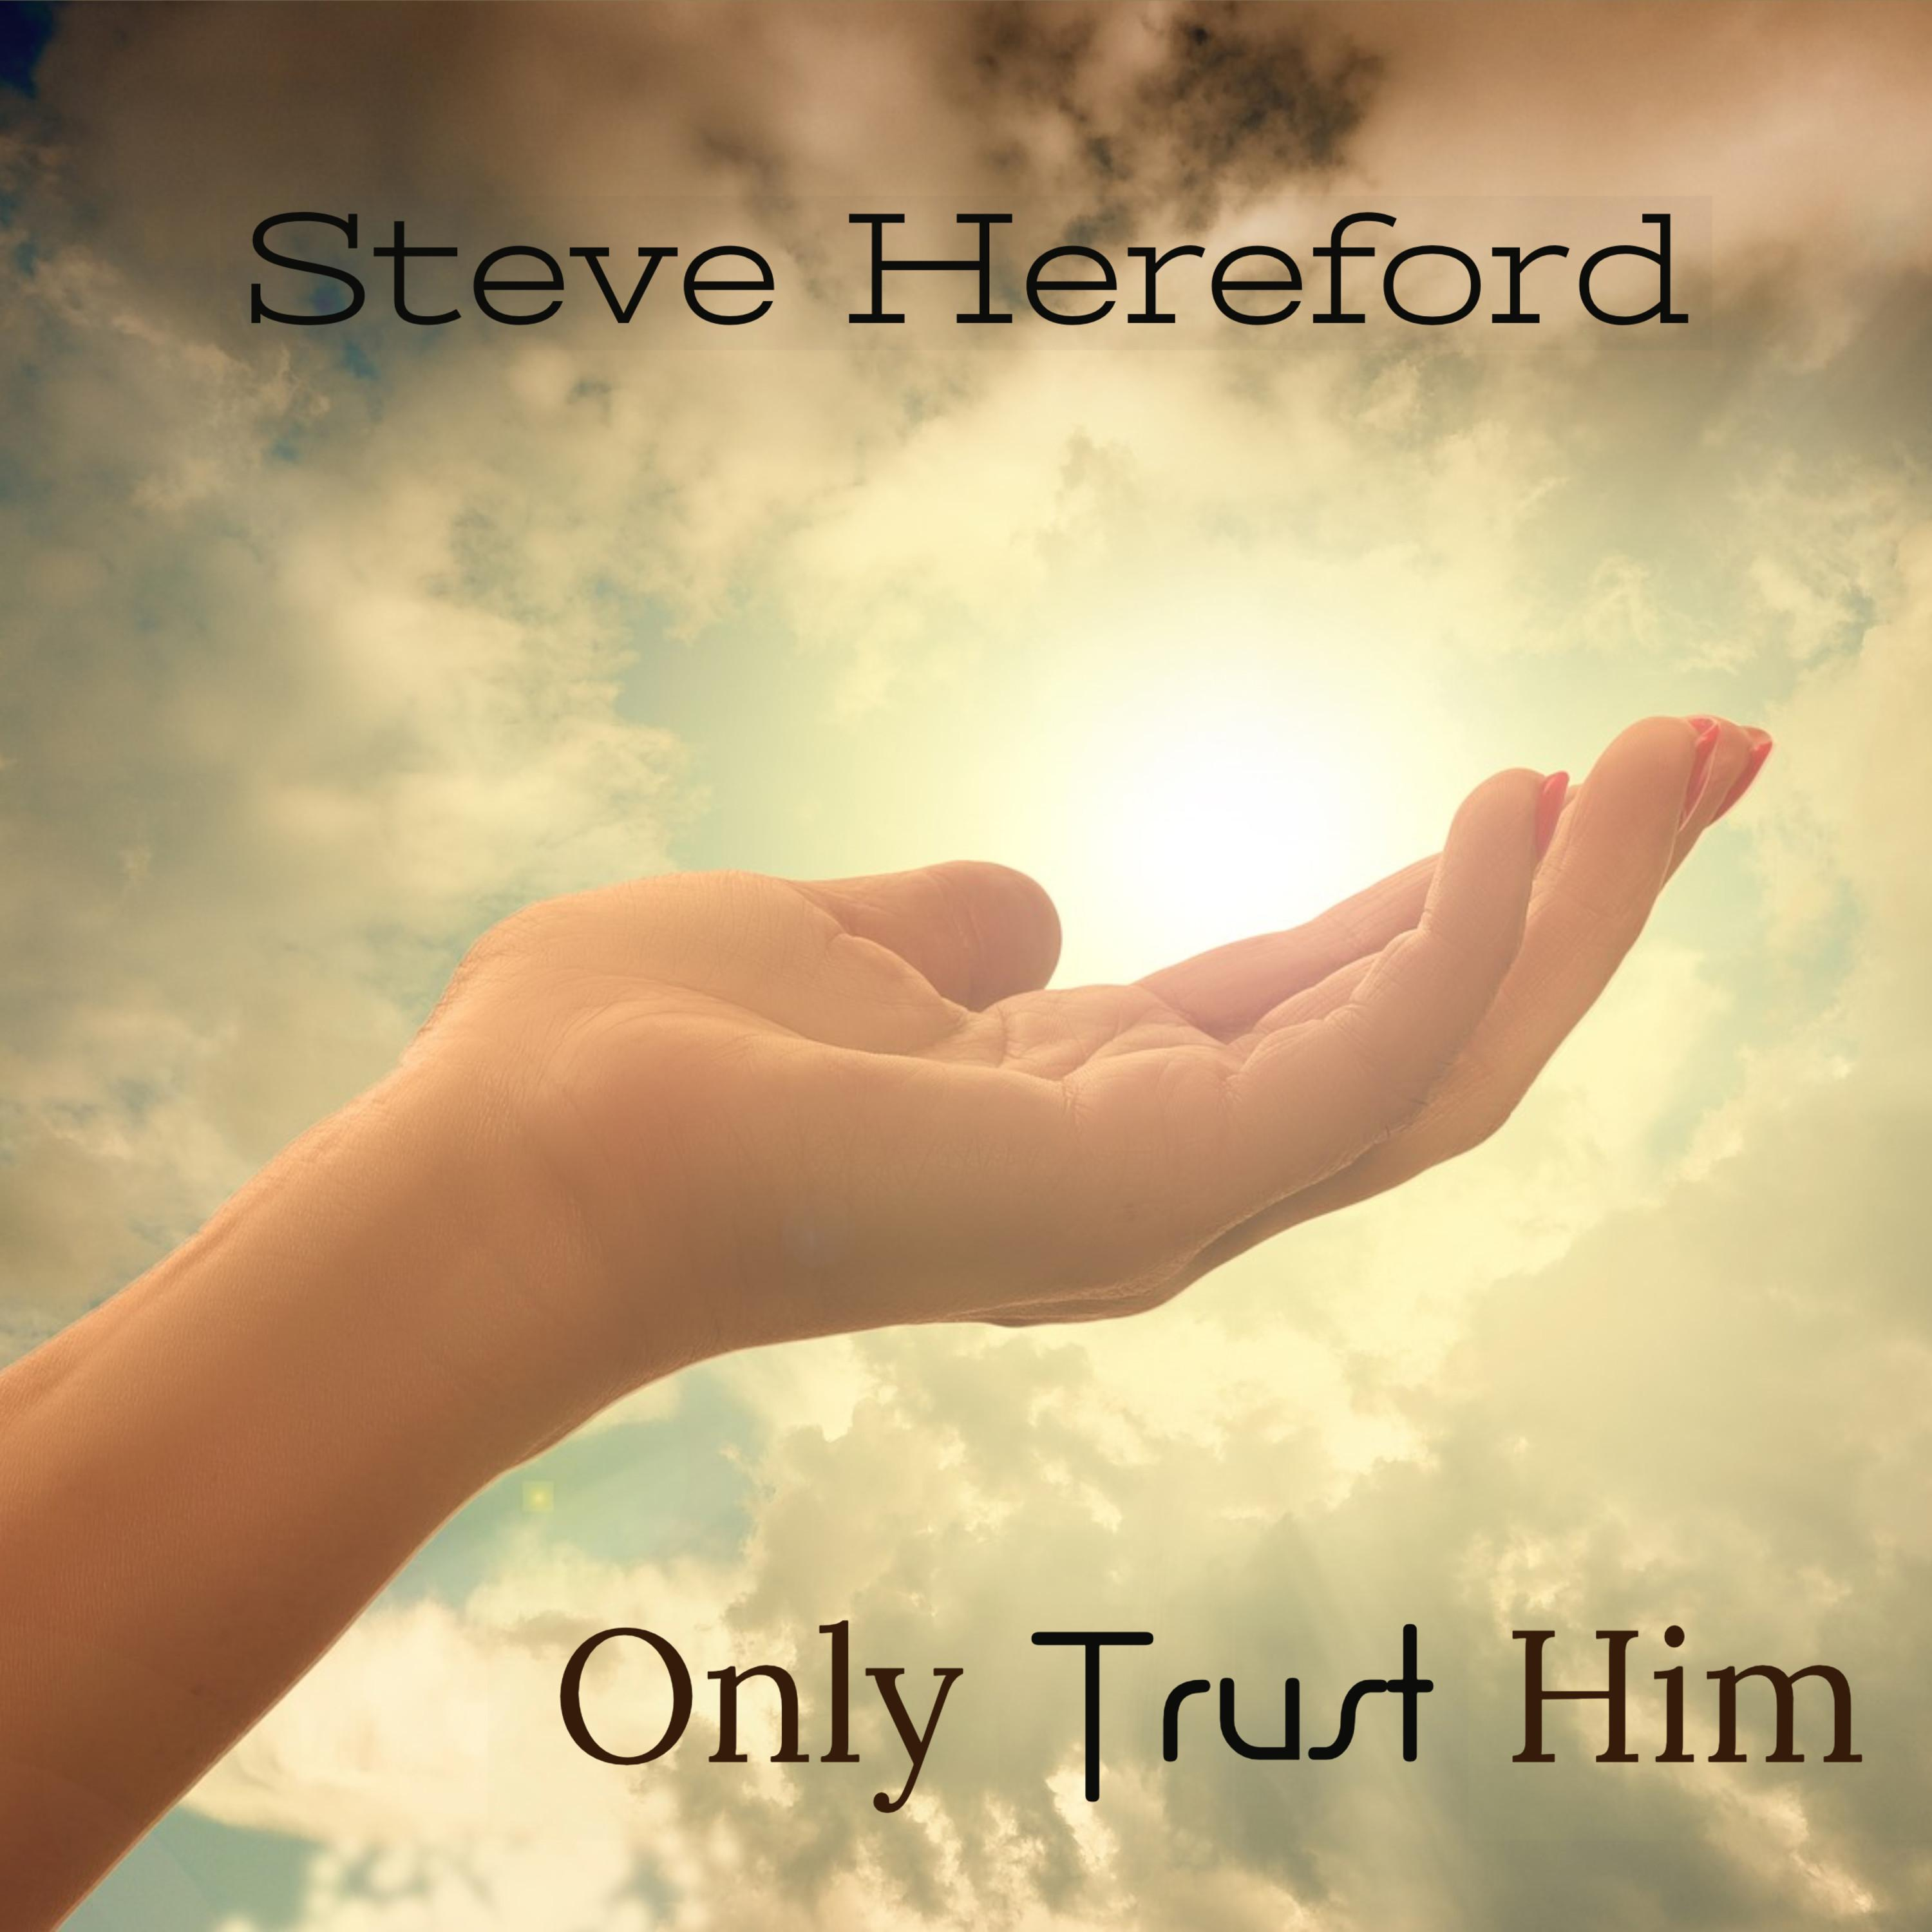 04Only Trust Him